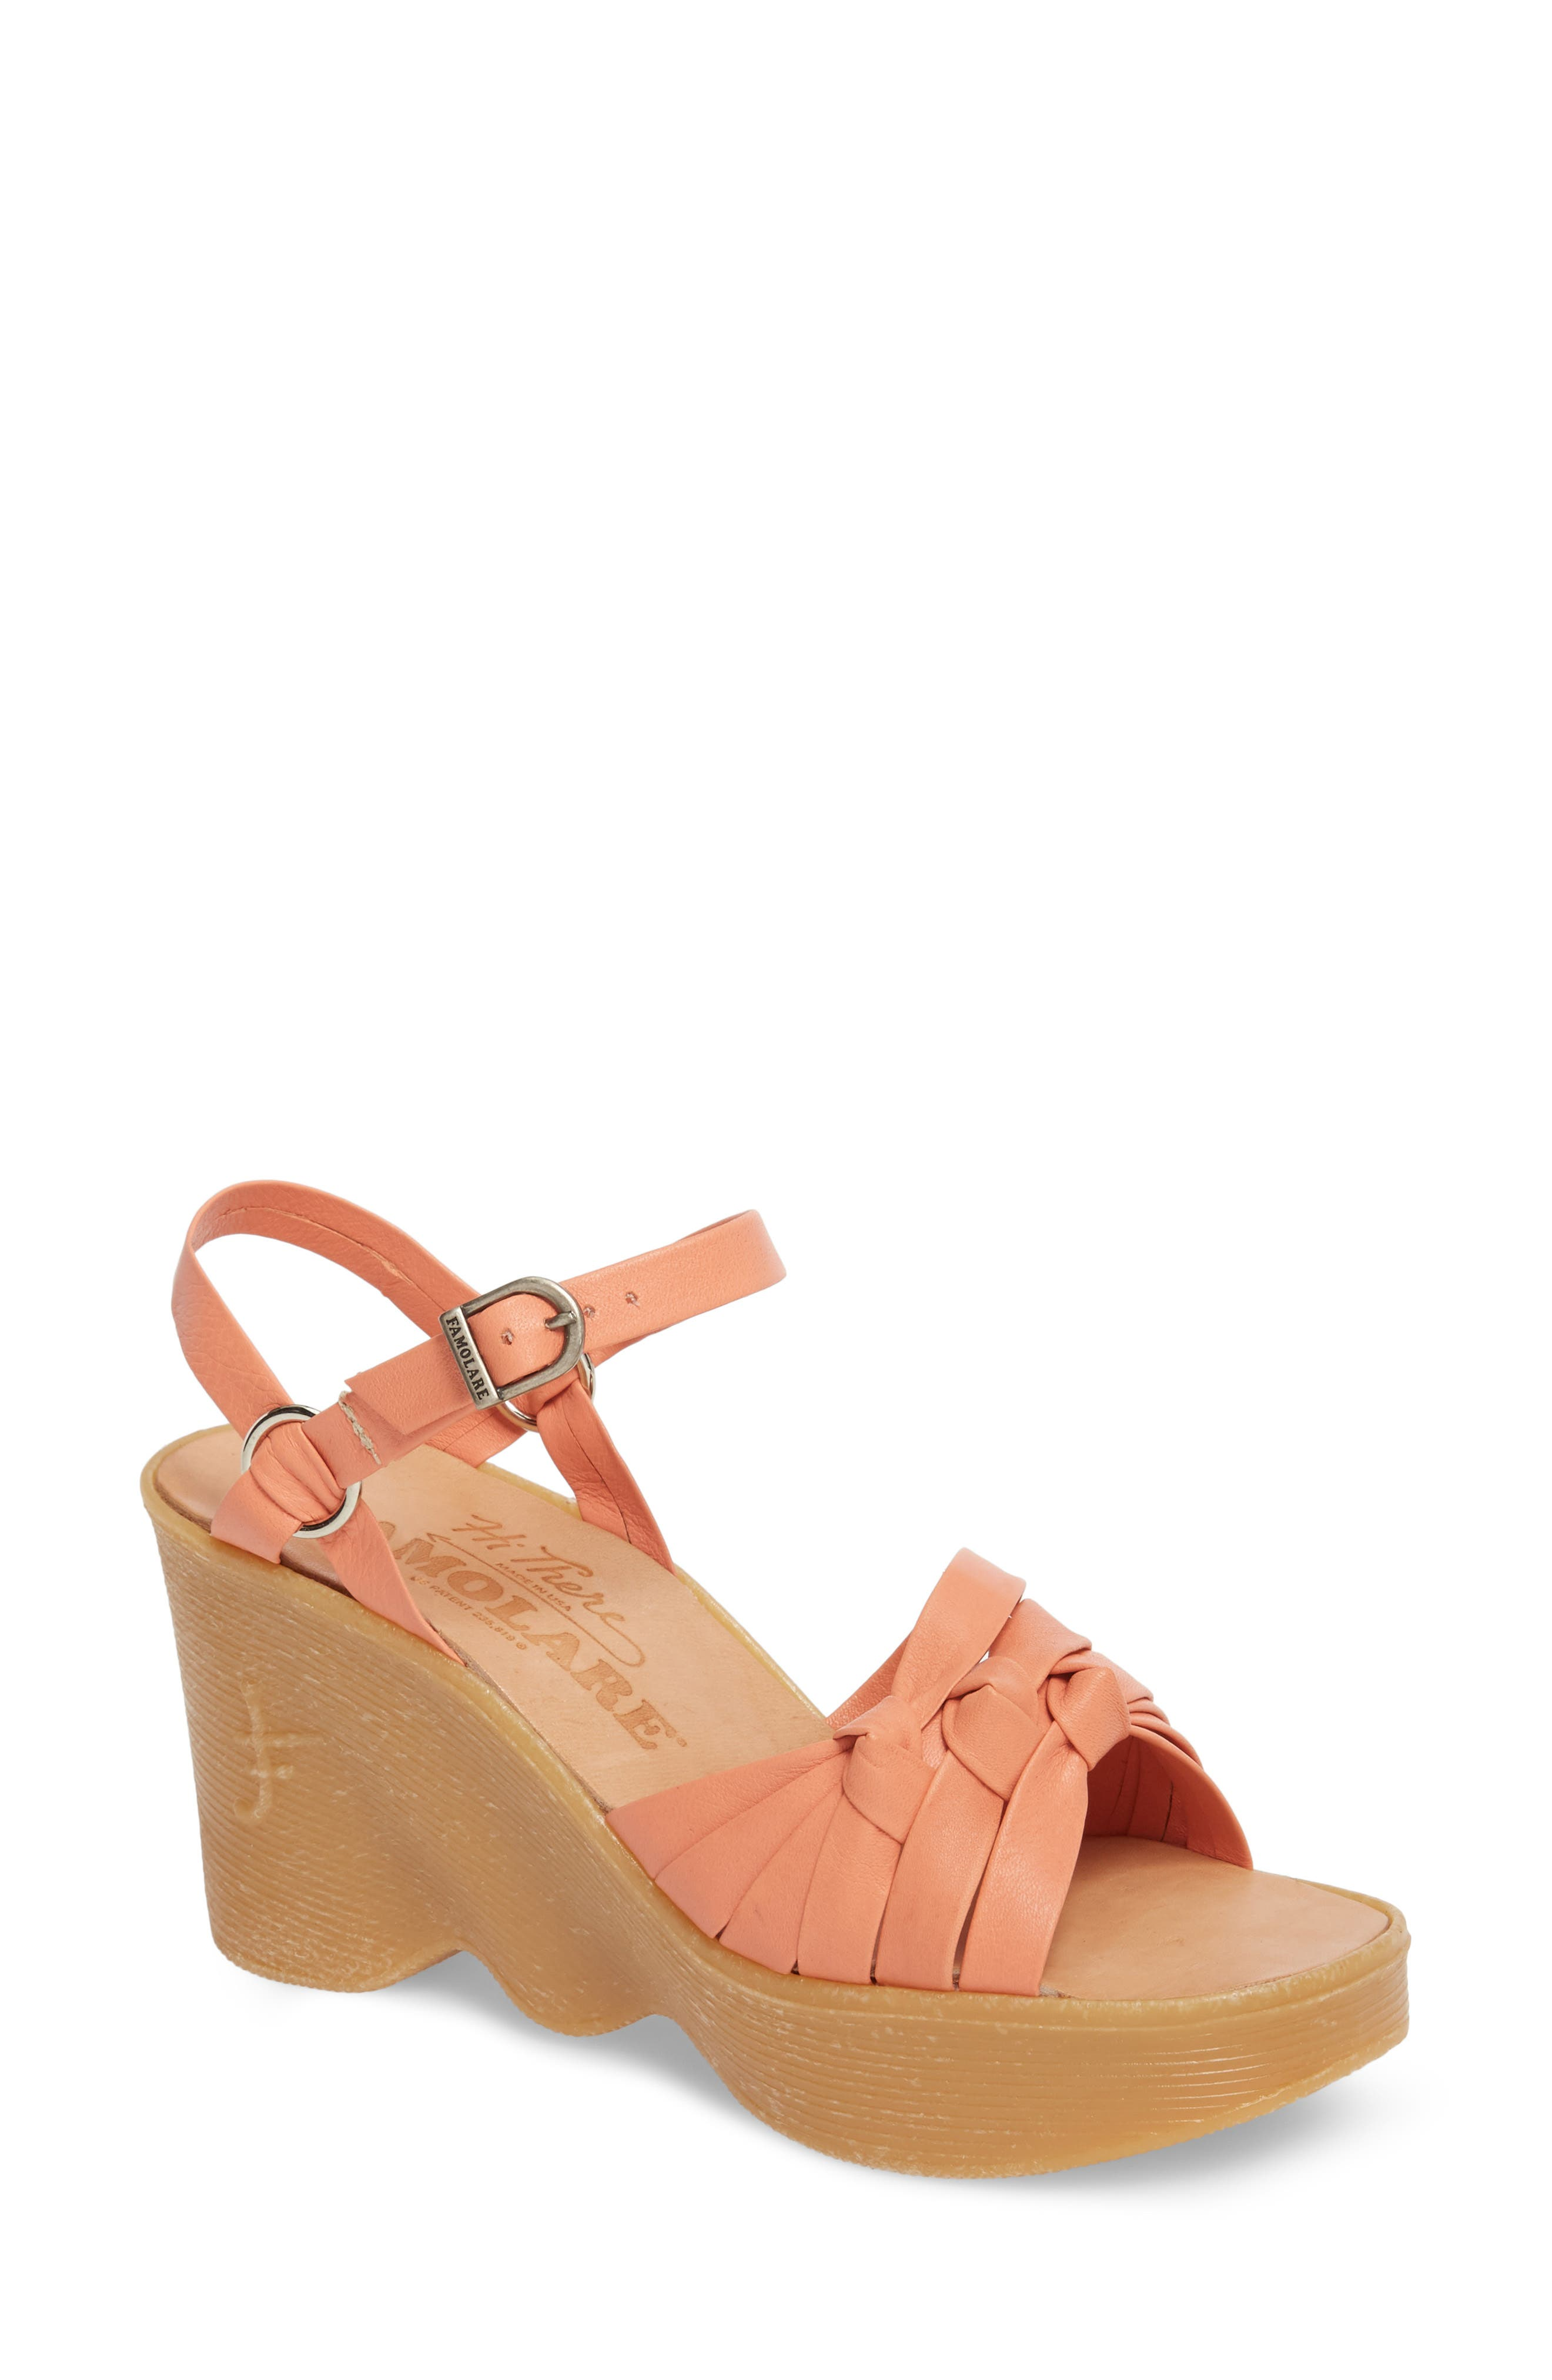 Knot So Fast Wedge Sandal,                             Main thumbnail 1, color,                             Salmon Leather